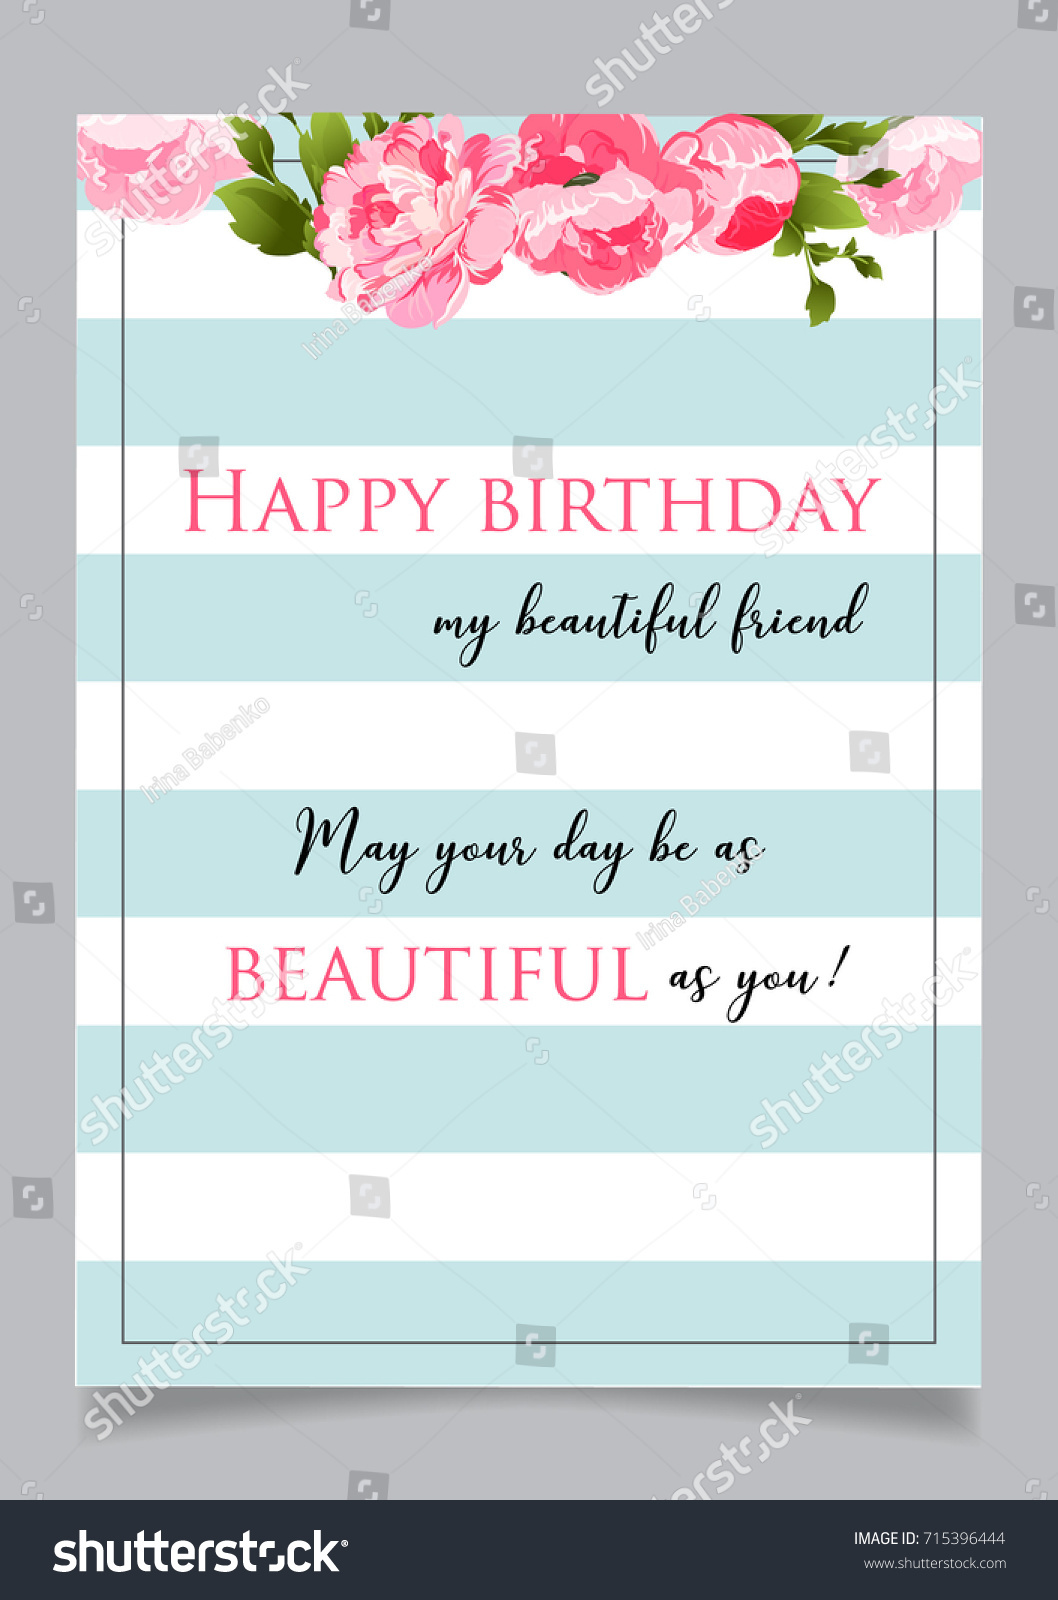 birthday greeting card with text happy birthday to my beautiful friend may you day be